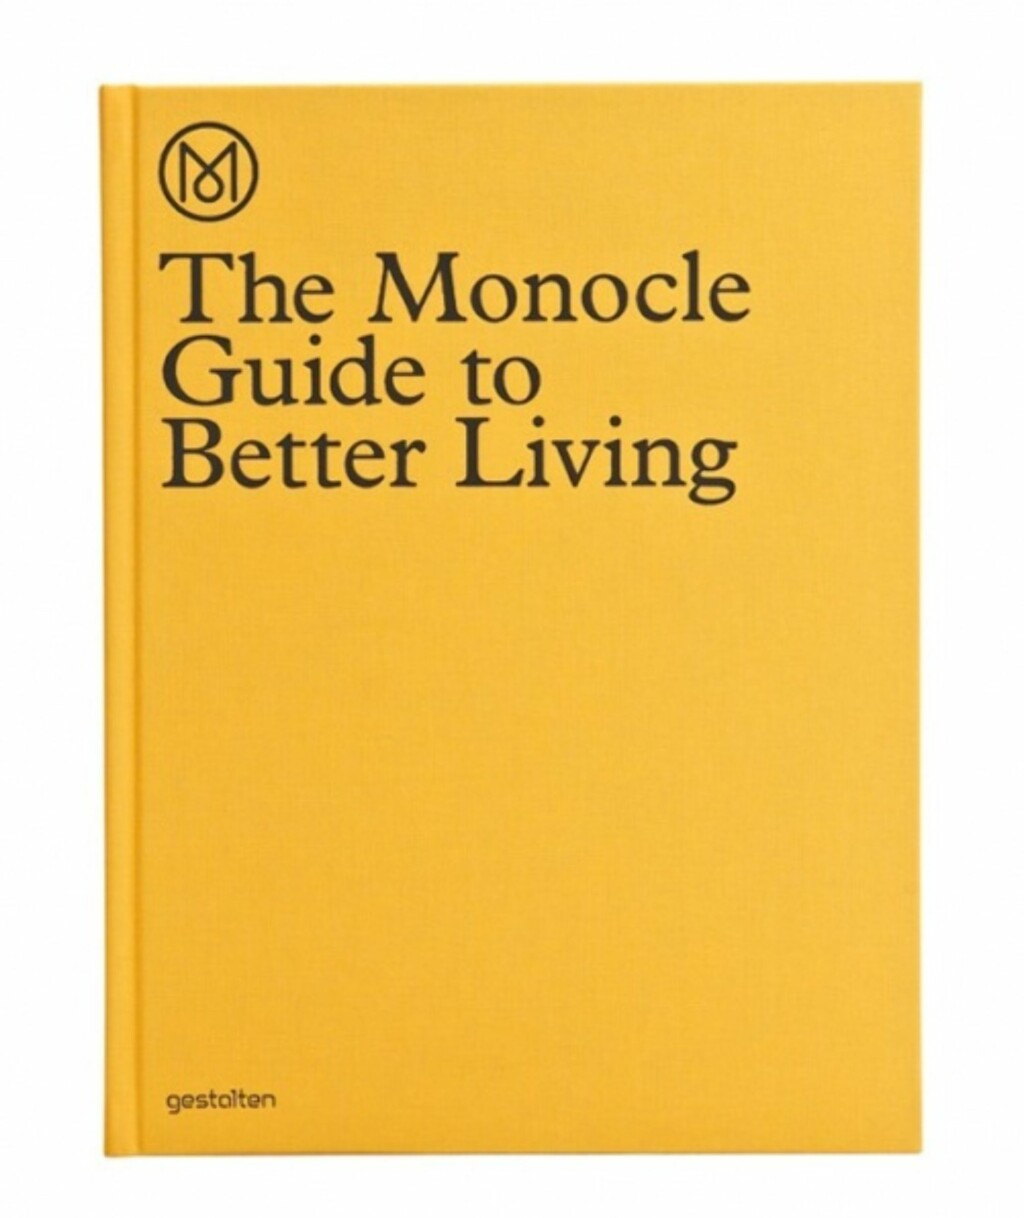 The Monocle Guide to Better Living |449,-